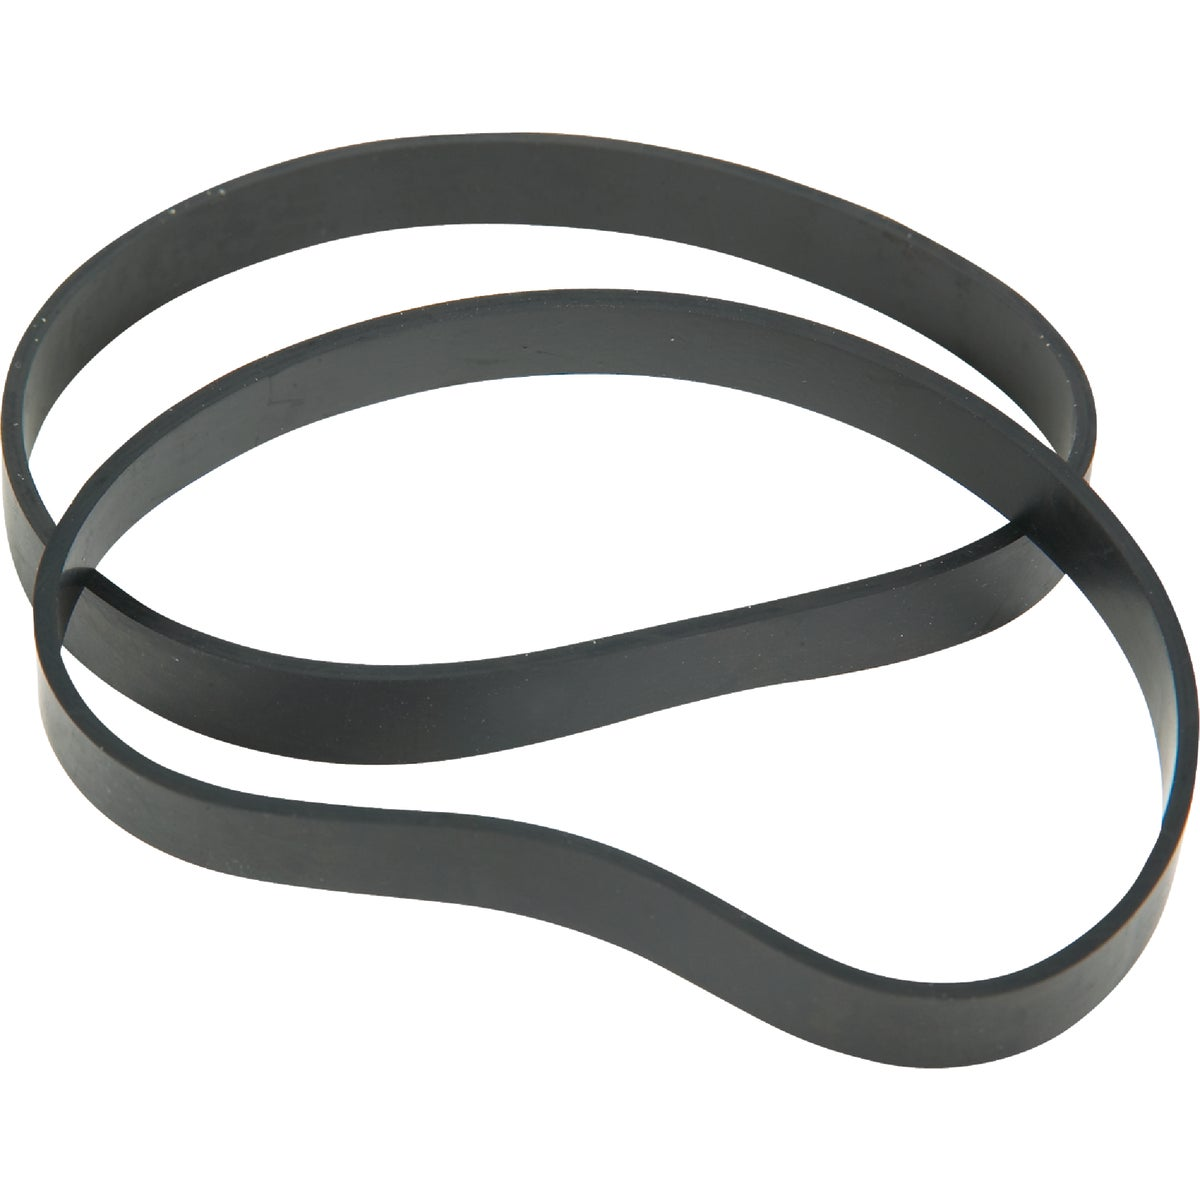 DYNAMITE 15 VACUUM BELT - 3-SN0220-001 by Royal Appliance